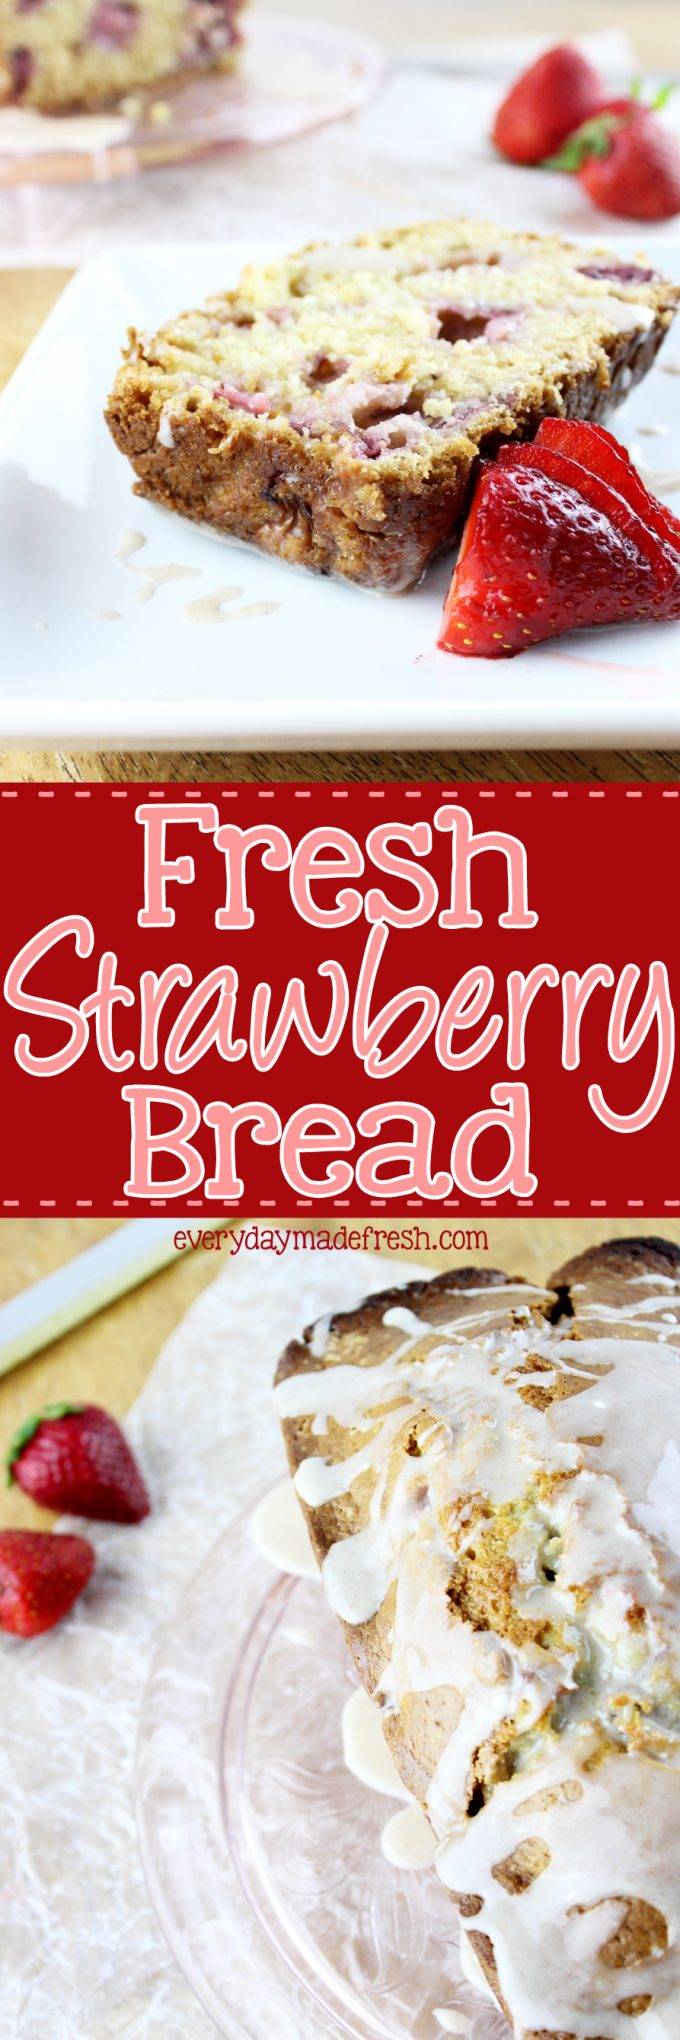 This Fresh Strawberry Bread will be one of your favorites. This quick bread is made with fresh strawberries, and topped with a cinnamon glaze. | EverydayMadeFresh.com